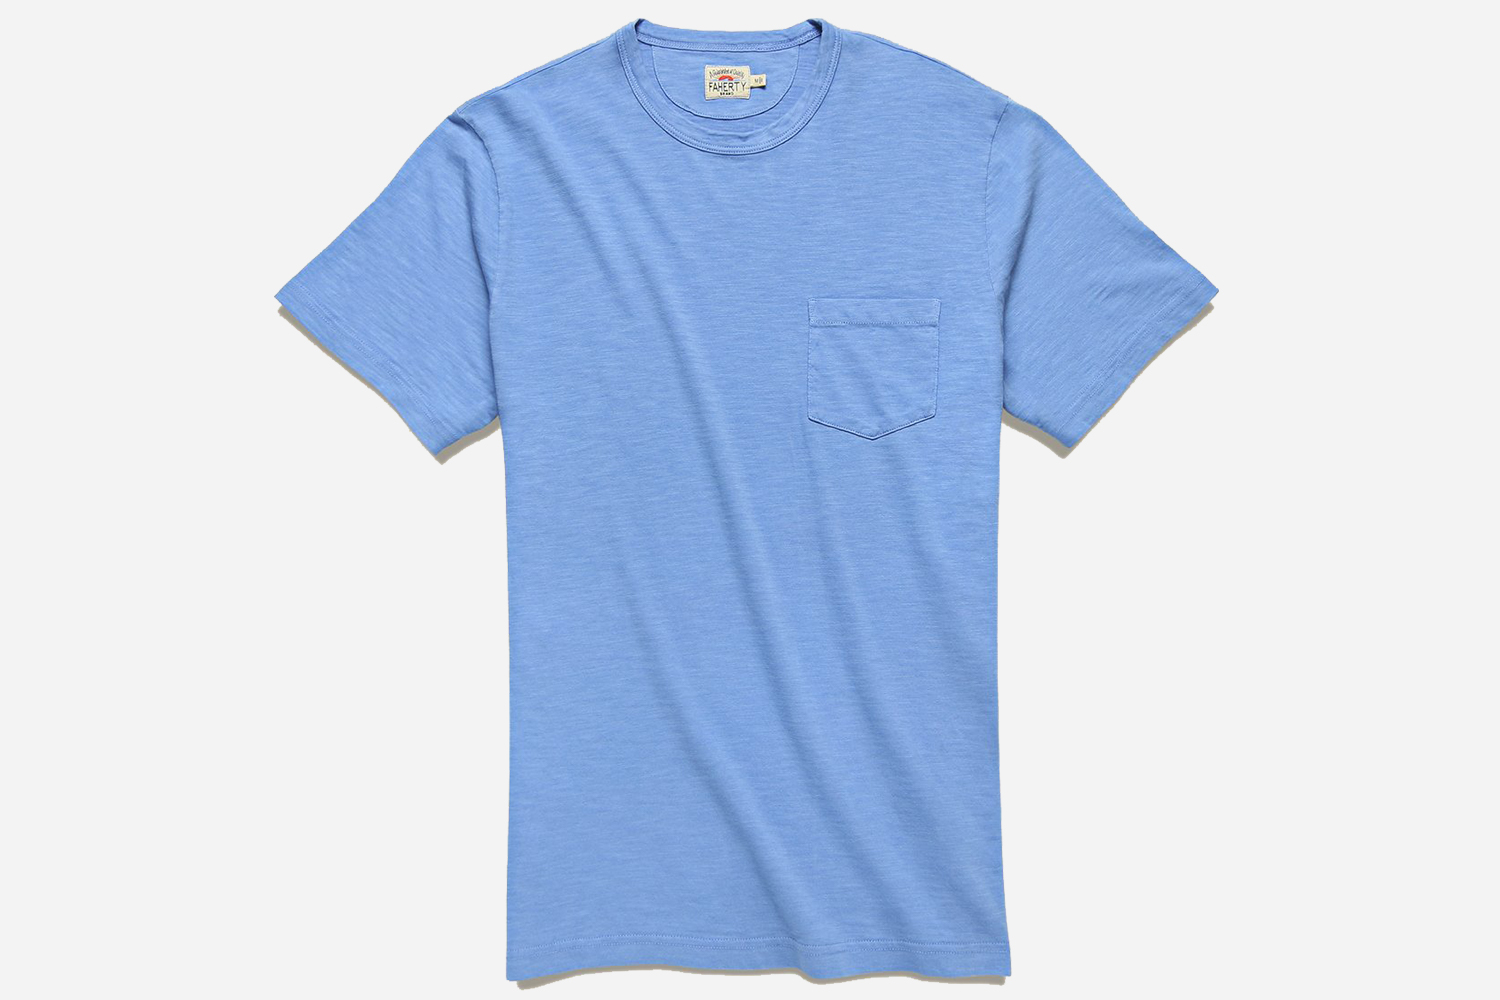 Faherty Men's Garment Dyed Pocket Tee